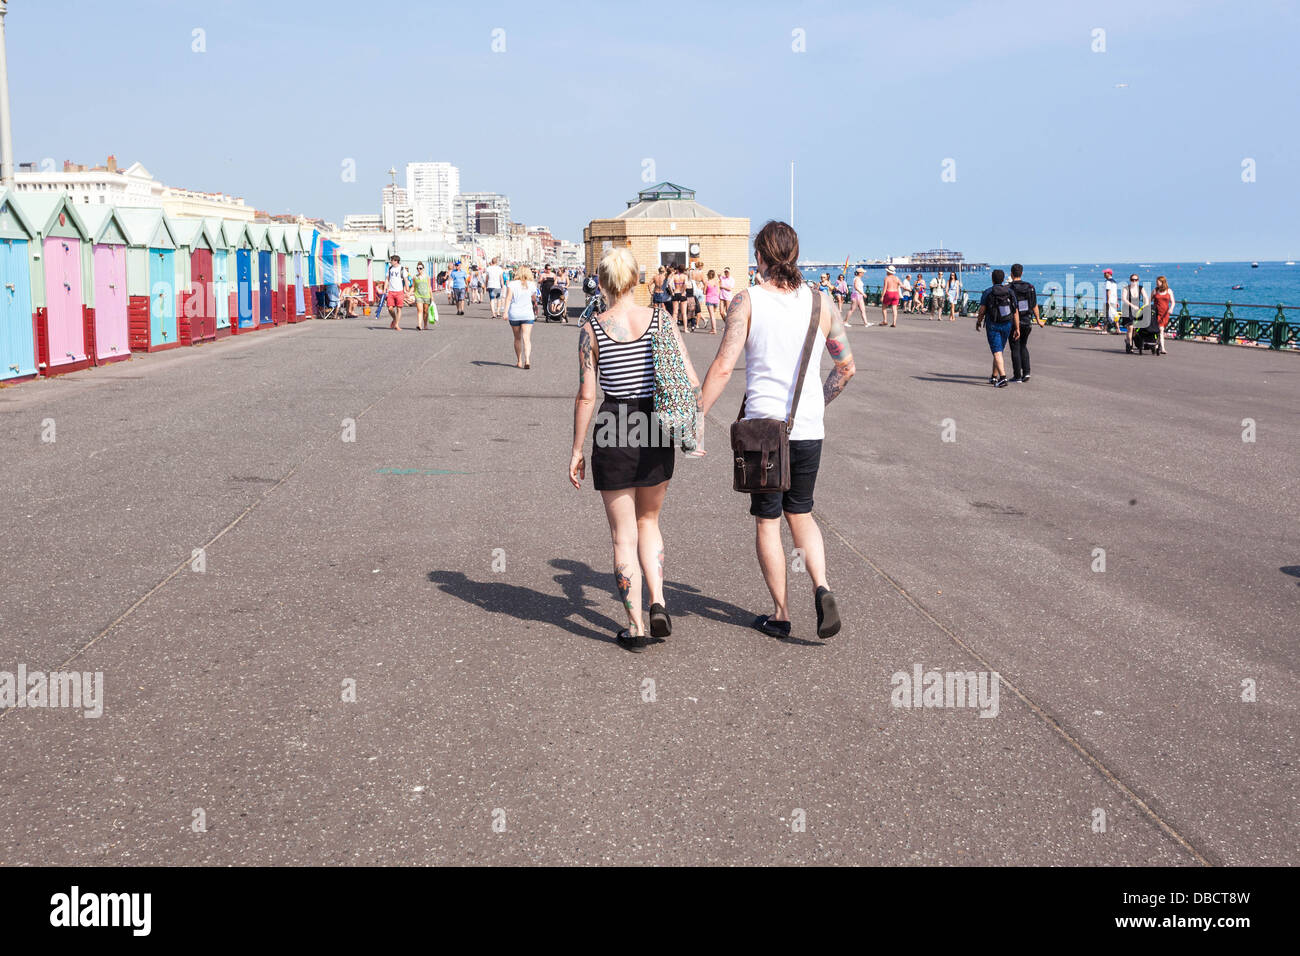 Les piétons se promenant le long de la mer, Brighton, England, UK Photo Stock